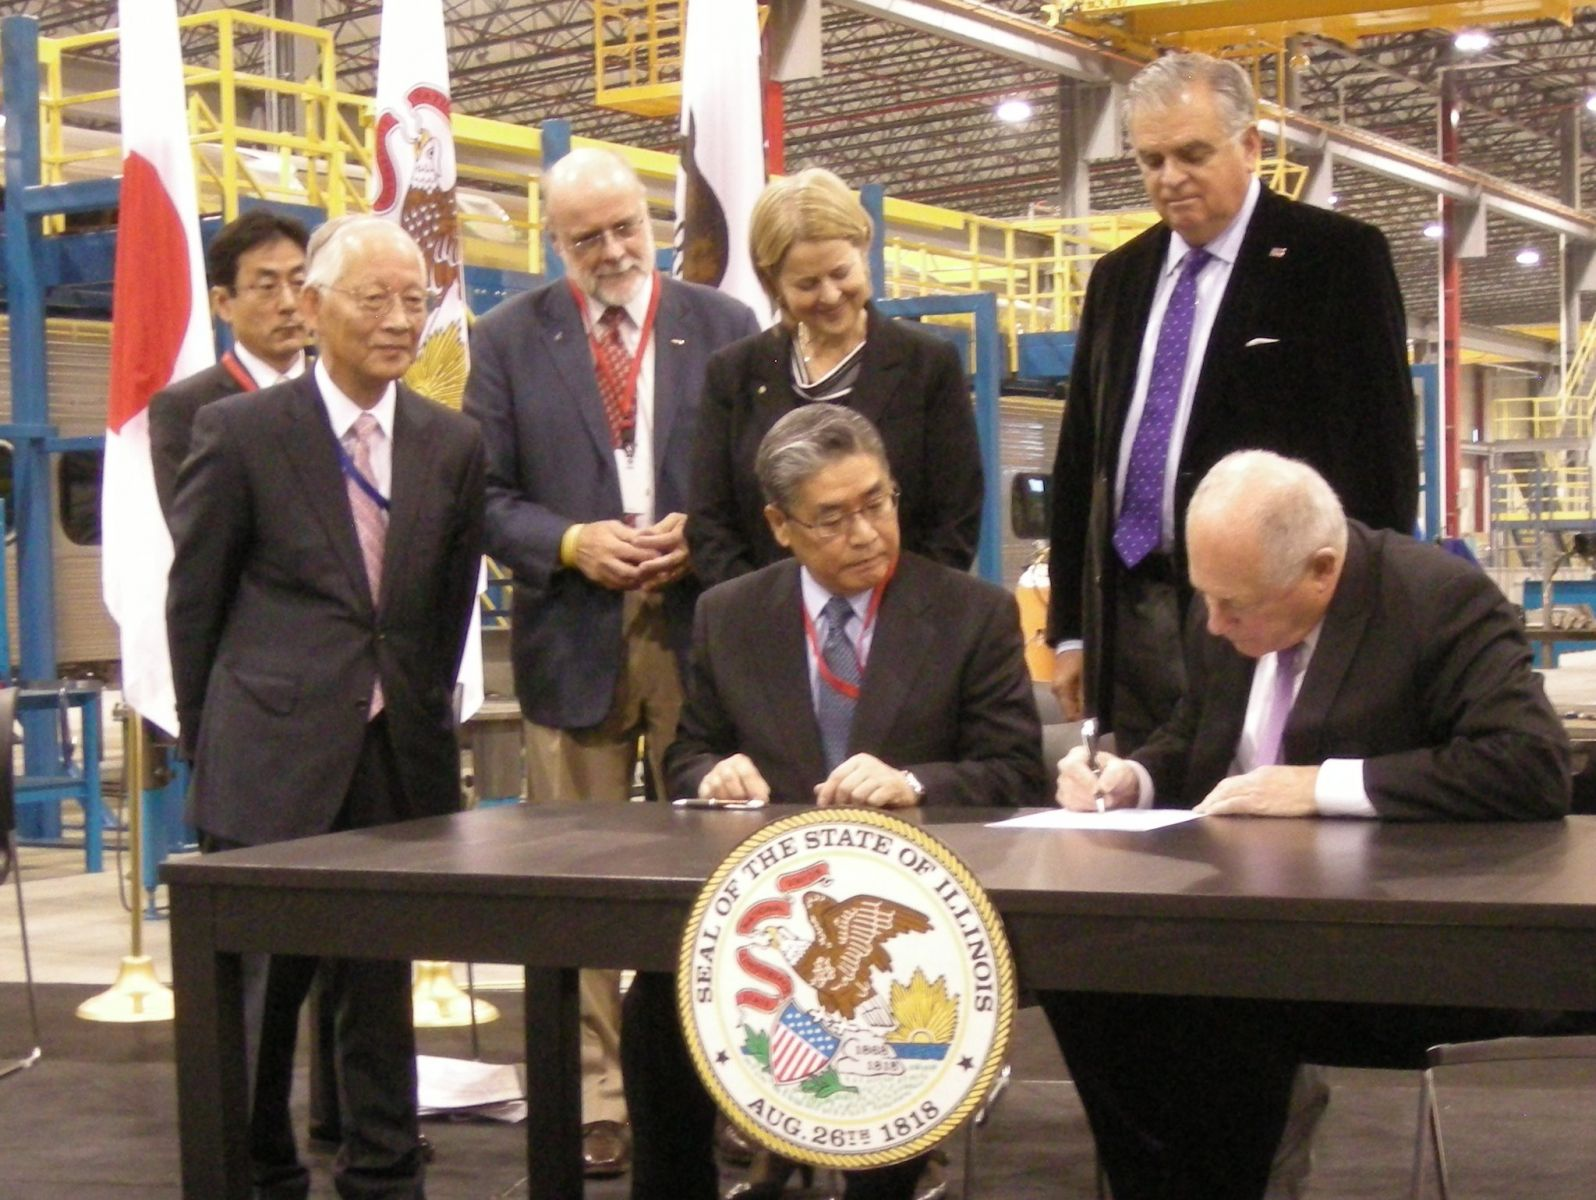 SCOA, Illinois Governor, U.S. Transporation Secretary Announce Landmark Railcar Manufacturing Contract